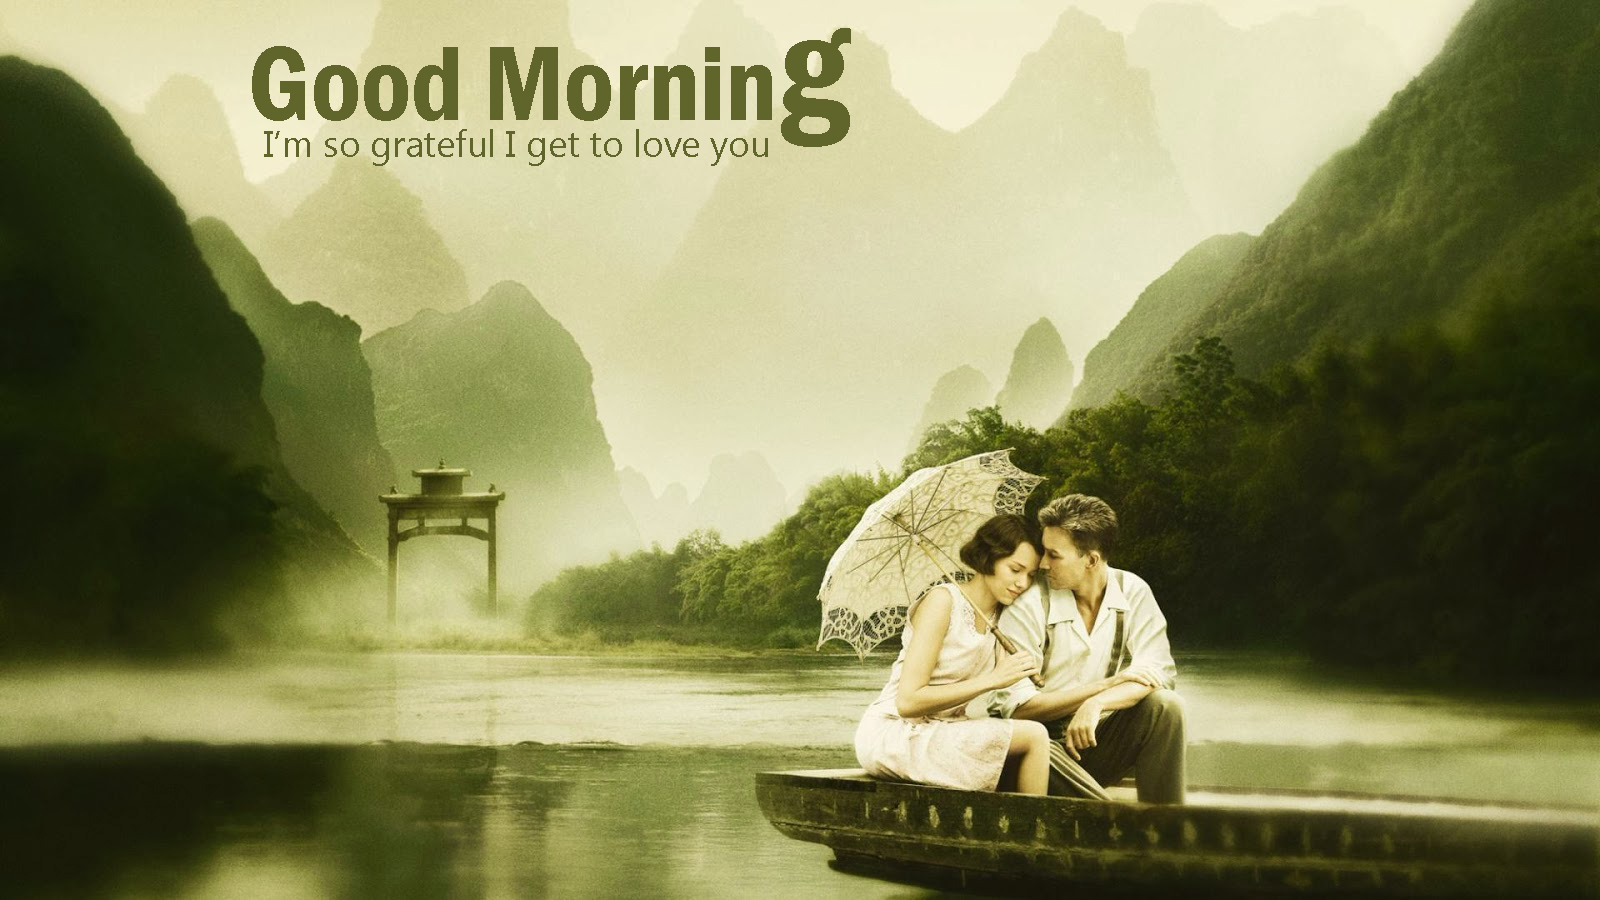 Hd Good Morning Romantic Images For Girlfriend And Boyfriend Good Morning Images Quotes Wishes Messages Greetings Ecards